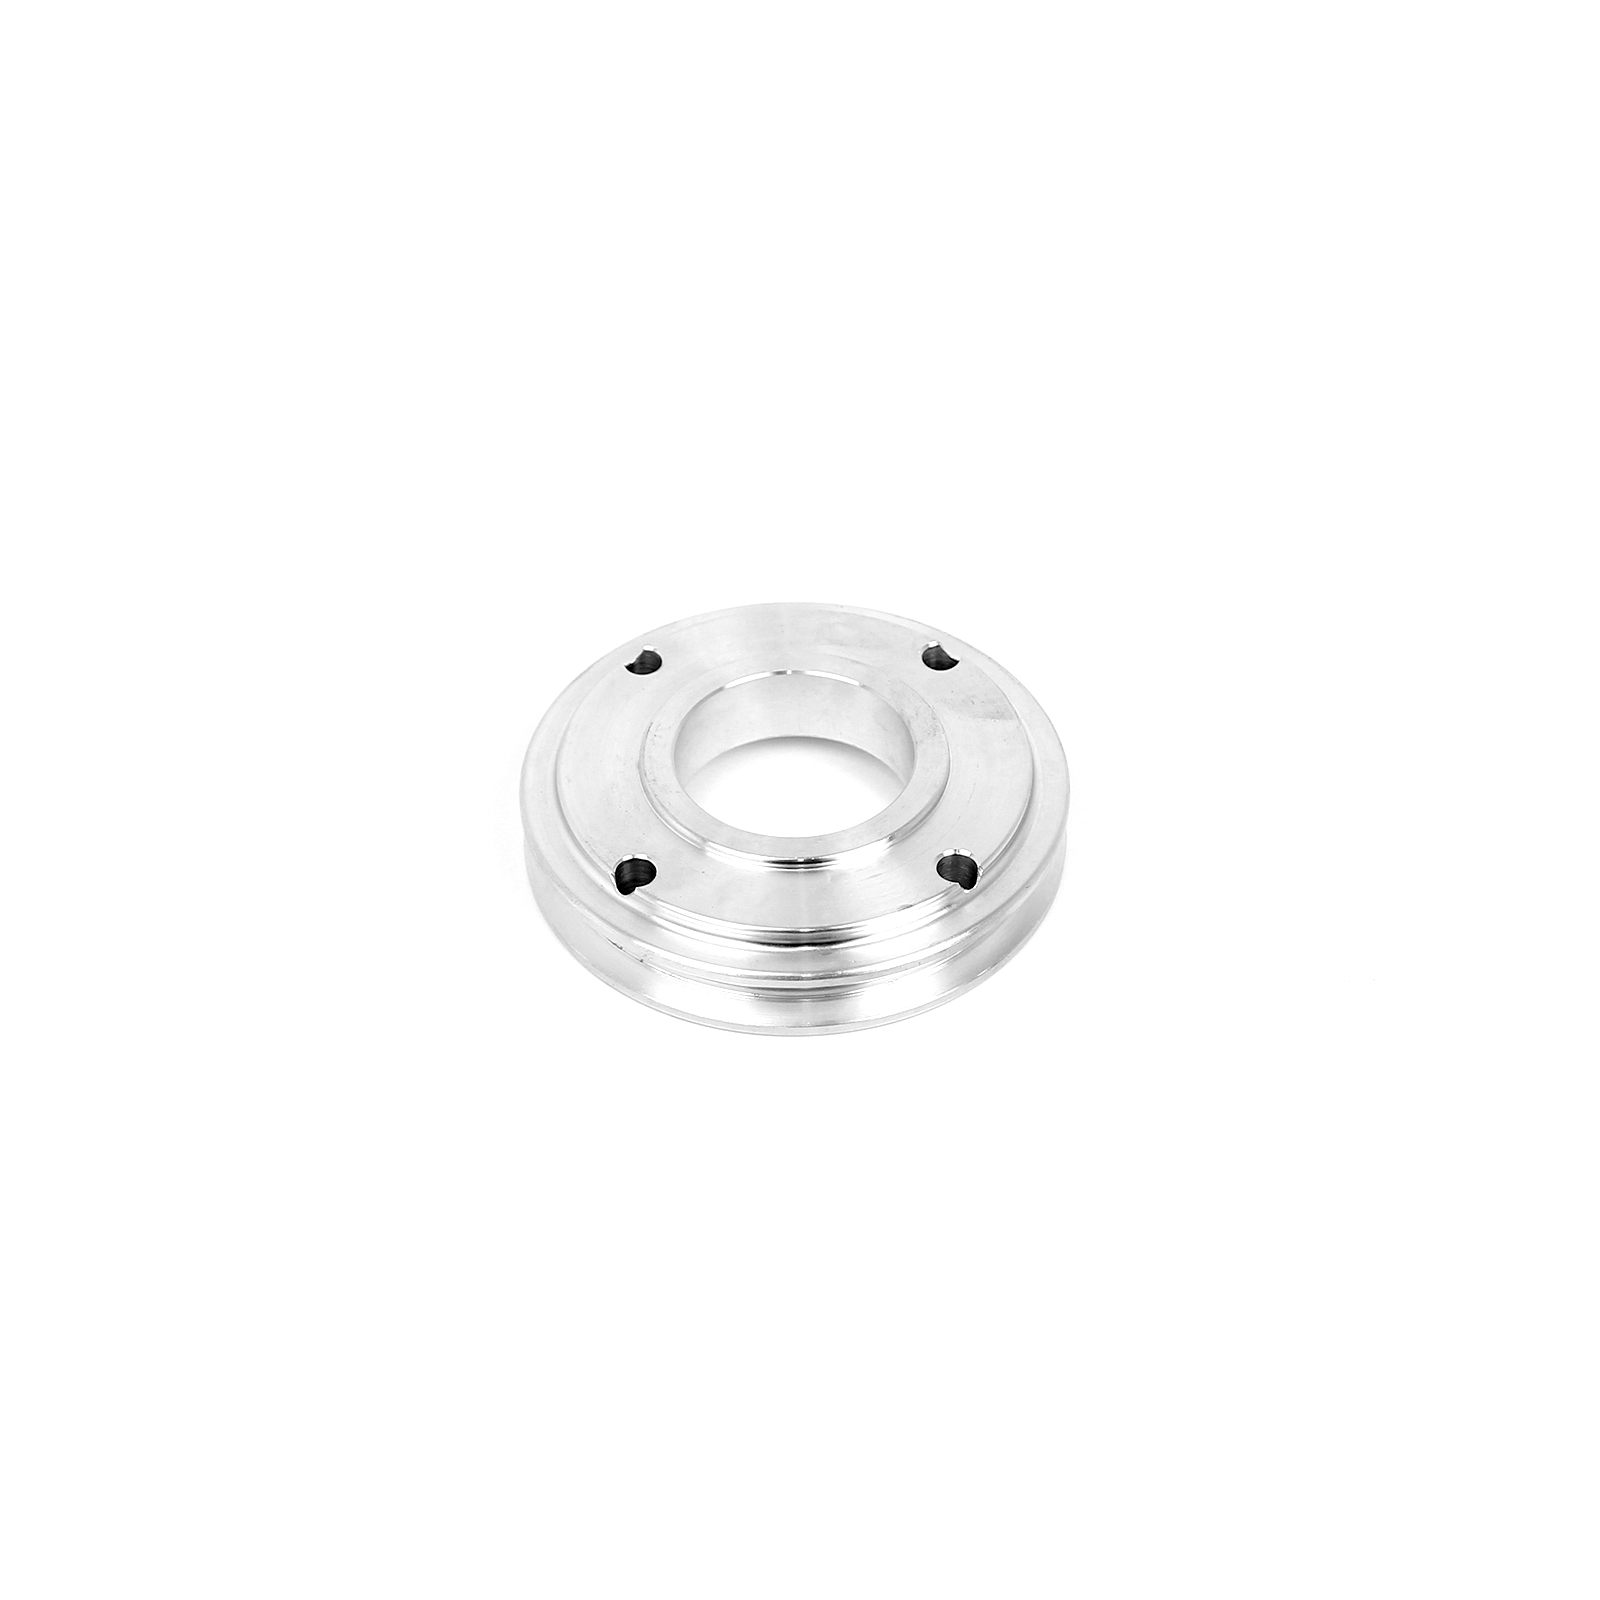 Holden Gilmer Air Conditioning Pulley